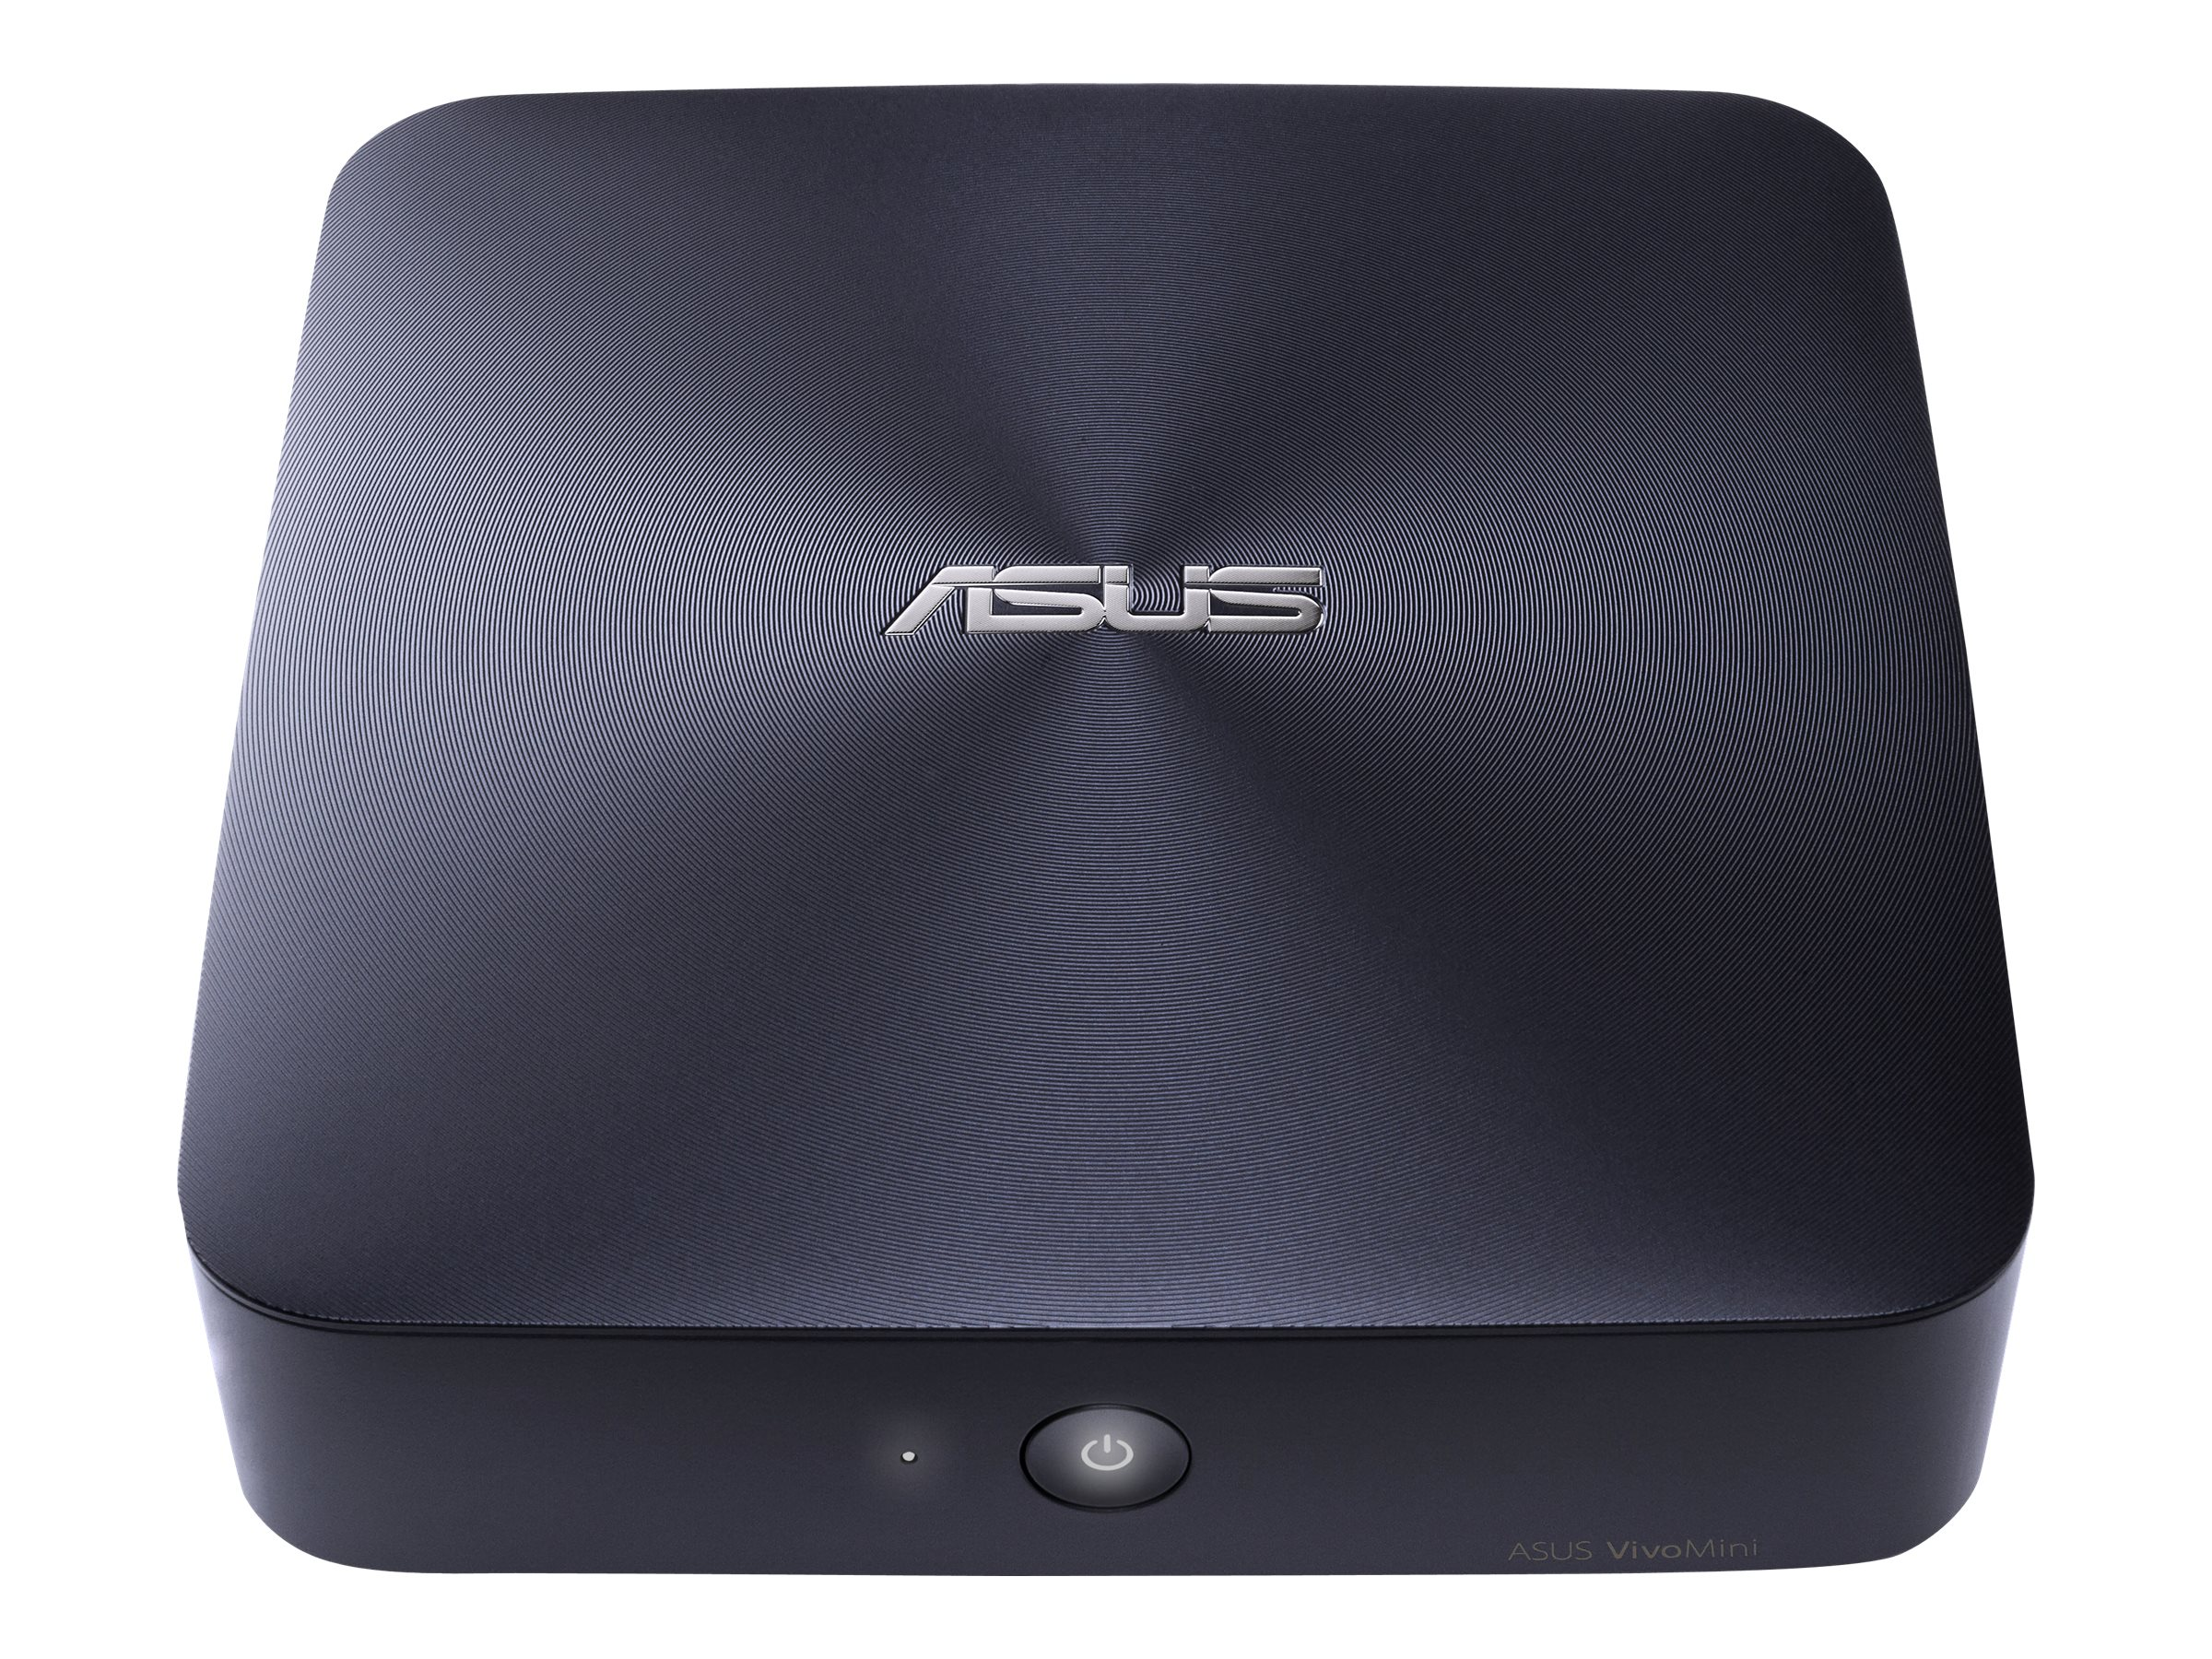 Asus VivoMini UN42 Mini Desktop Celeron 2957U, Midnight Blue, UN42-M111M